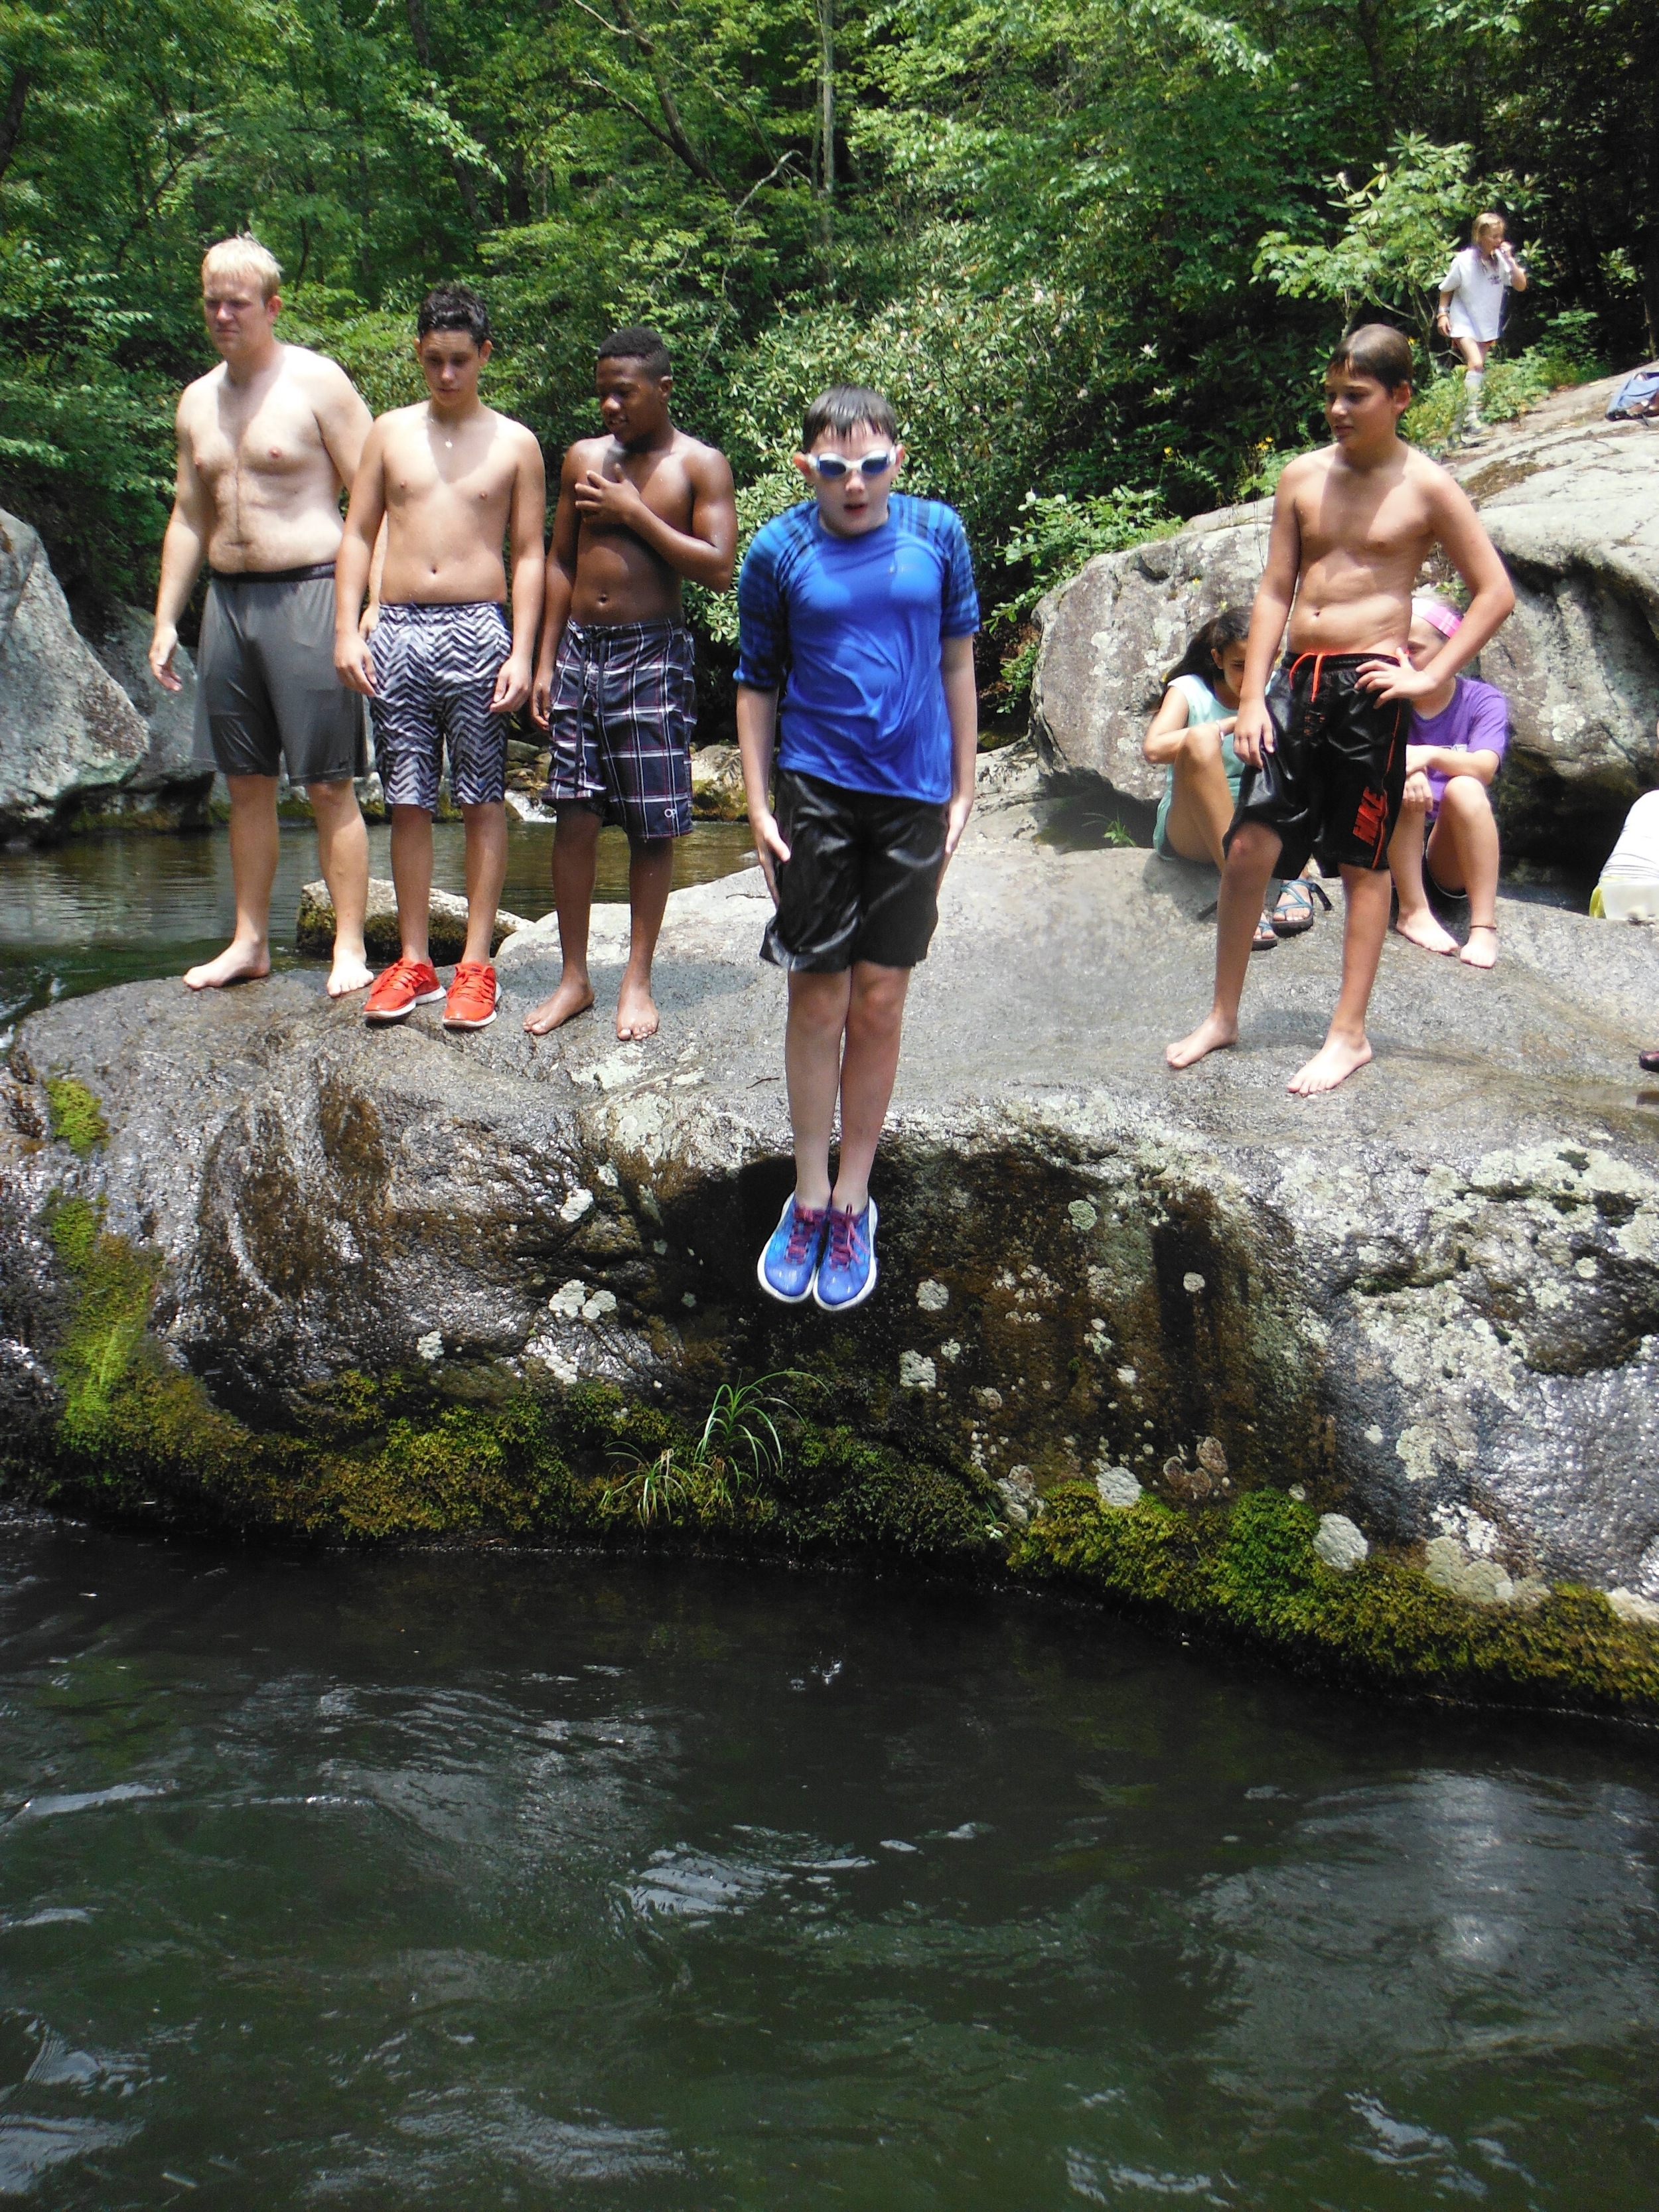 henry-jumps-into-the-icy-cold-waters-of-wilsons-creek.jpg